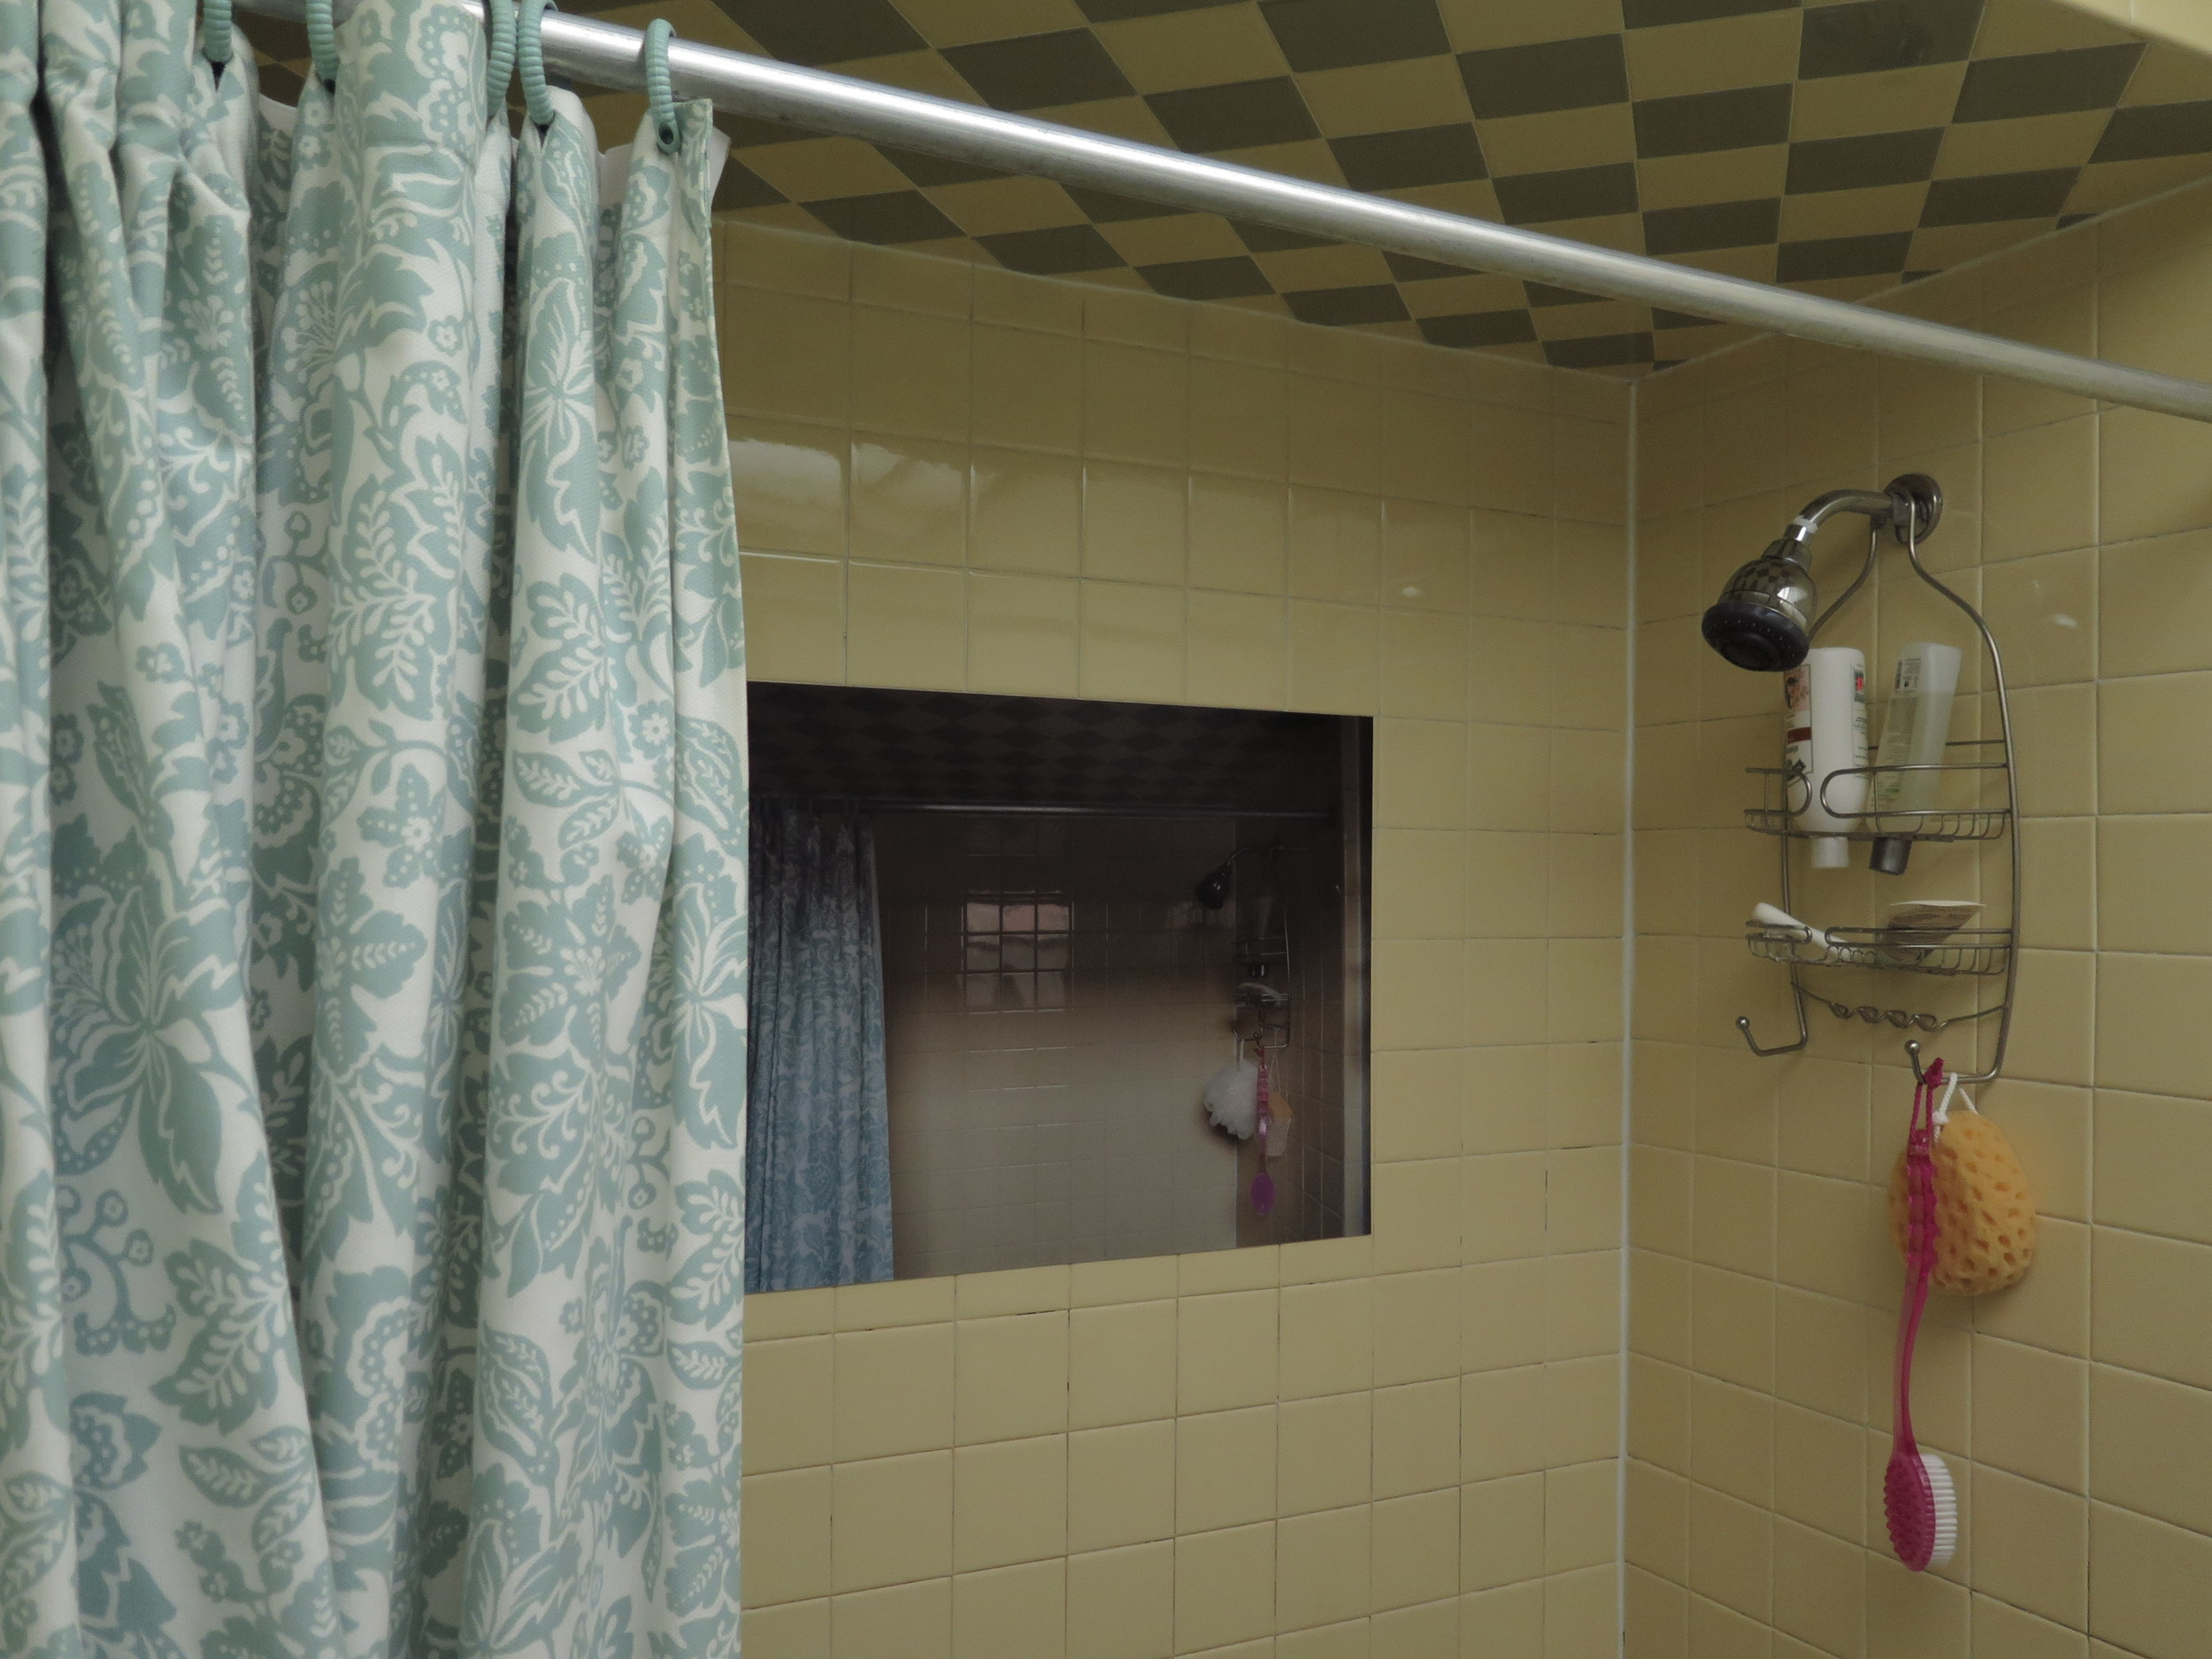 """""""Shower No. 1"""" by Laura Hinely for apARTment #1, which is the same bathroom on the other side of the wall   that featured   Beatrice Wolert's piece."""